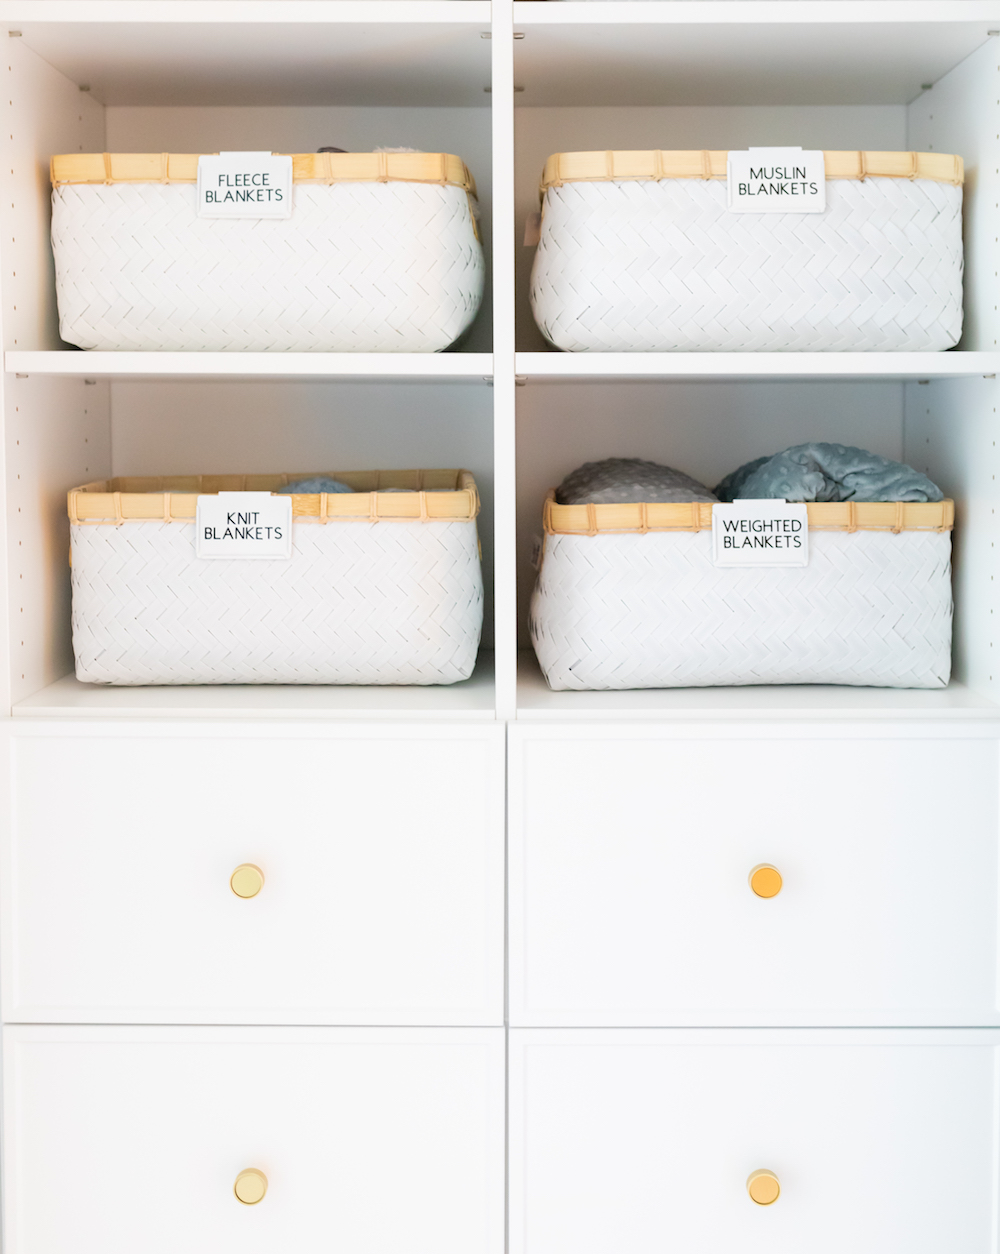 White cabinet with white baskets labeled for blankets.